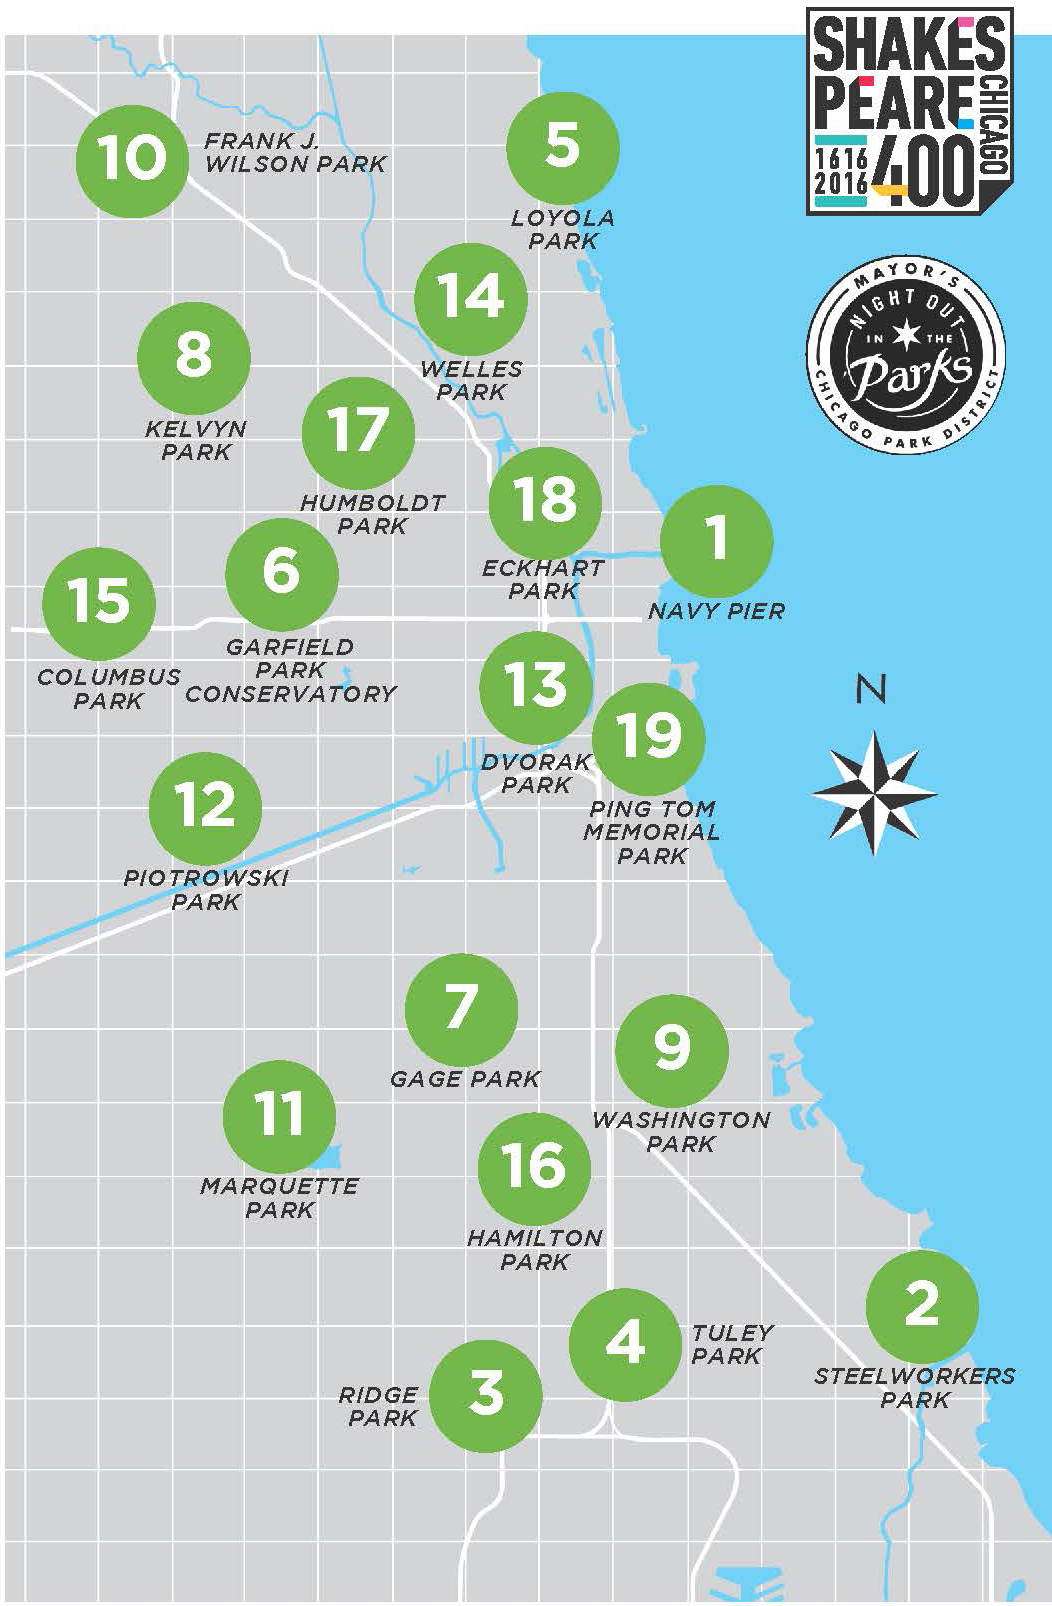 Map of Chicago Shakespeare in the Parks 2016